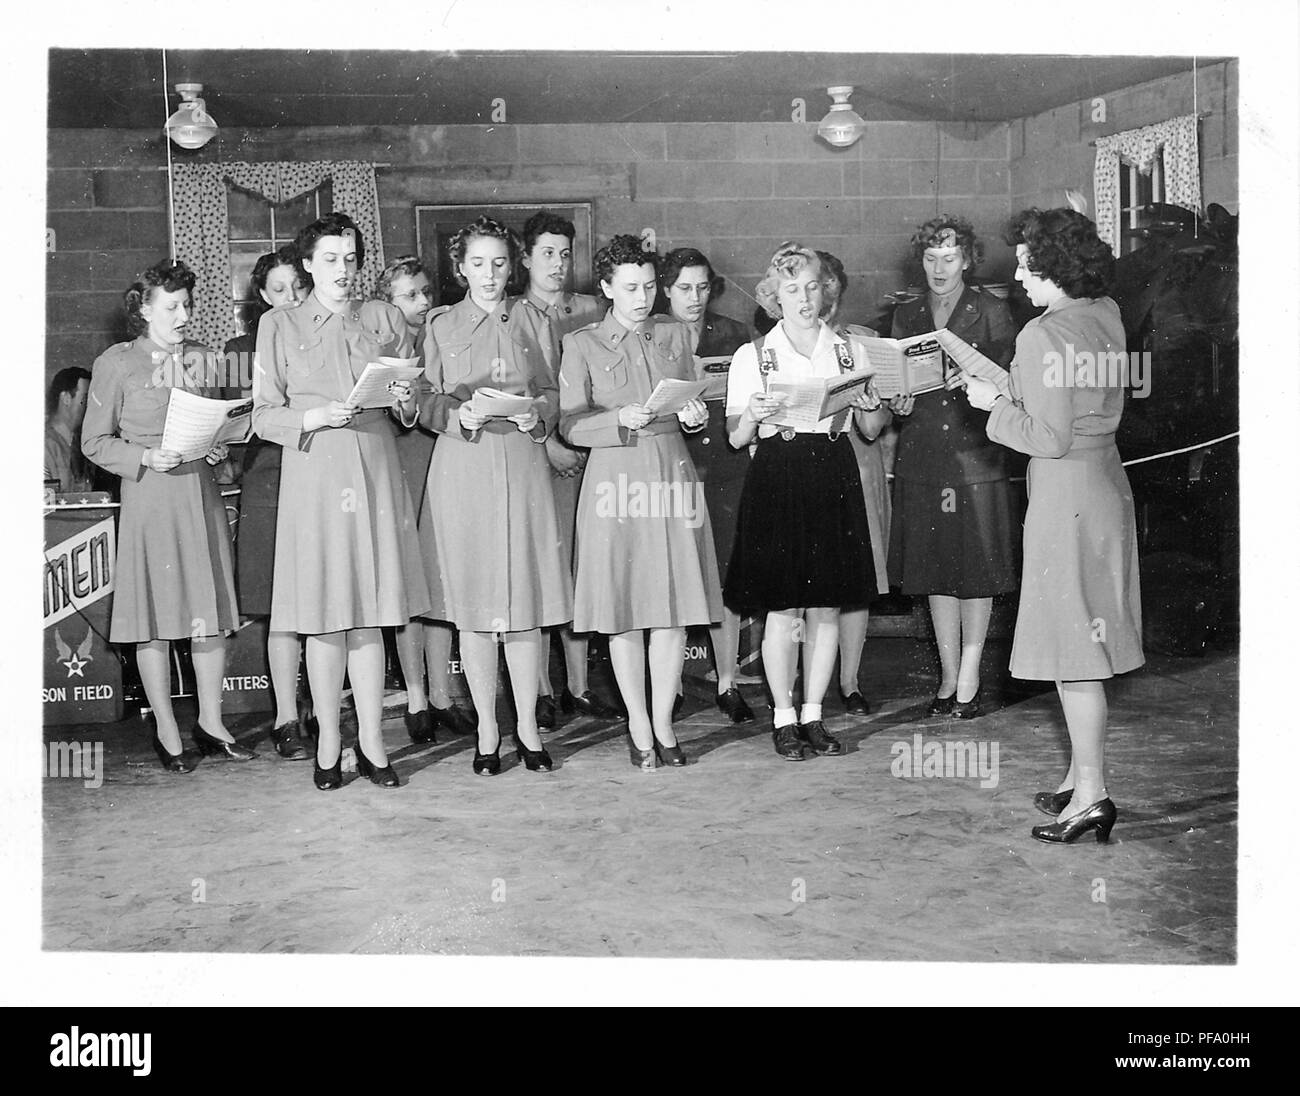 Black and white photograph, showing a group of women, most wearing military skirts and jackets, one in civilian skirt and top, standing indoors, and singing from musical scores that they hold in their hands, likely photographed in Ohio during World War II, 1945. () - Stock Image